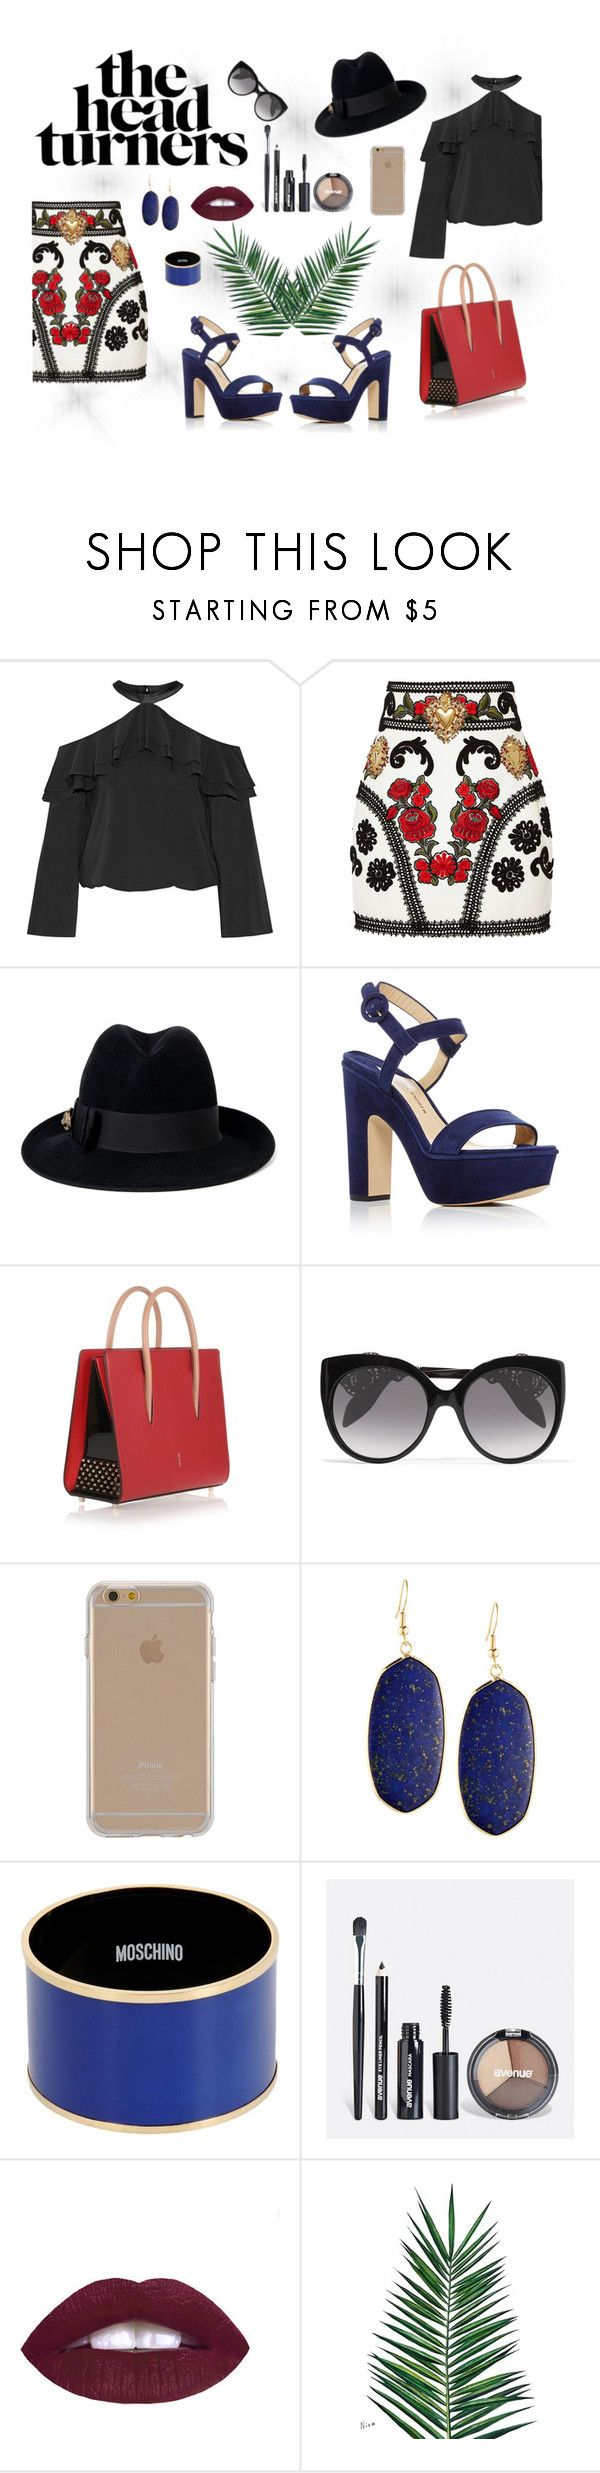 """""""The head turners"""" by pinkg555 on Polyvore featuring Alice + Olivia, Dolce&Gabbana, Gucci, Paul Andrew, Christian Louboutin, Alexander McQueen, Agent 18, Panacea, Moschino and Avenue"""